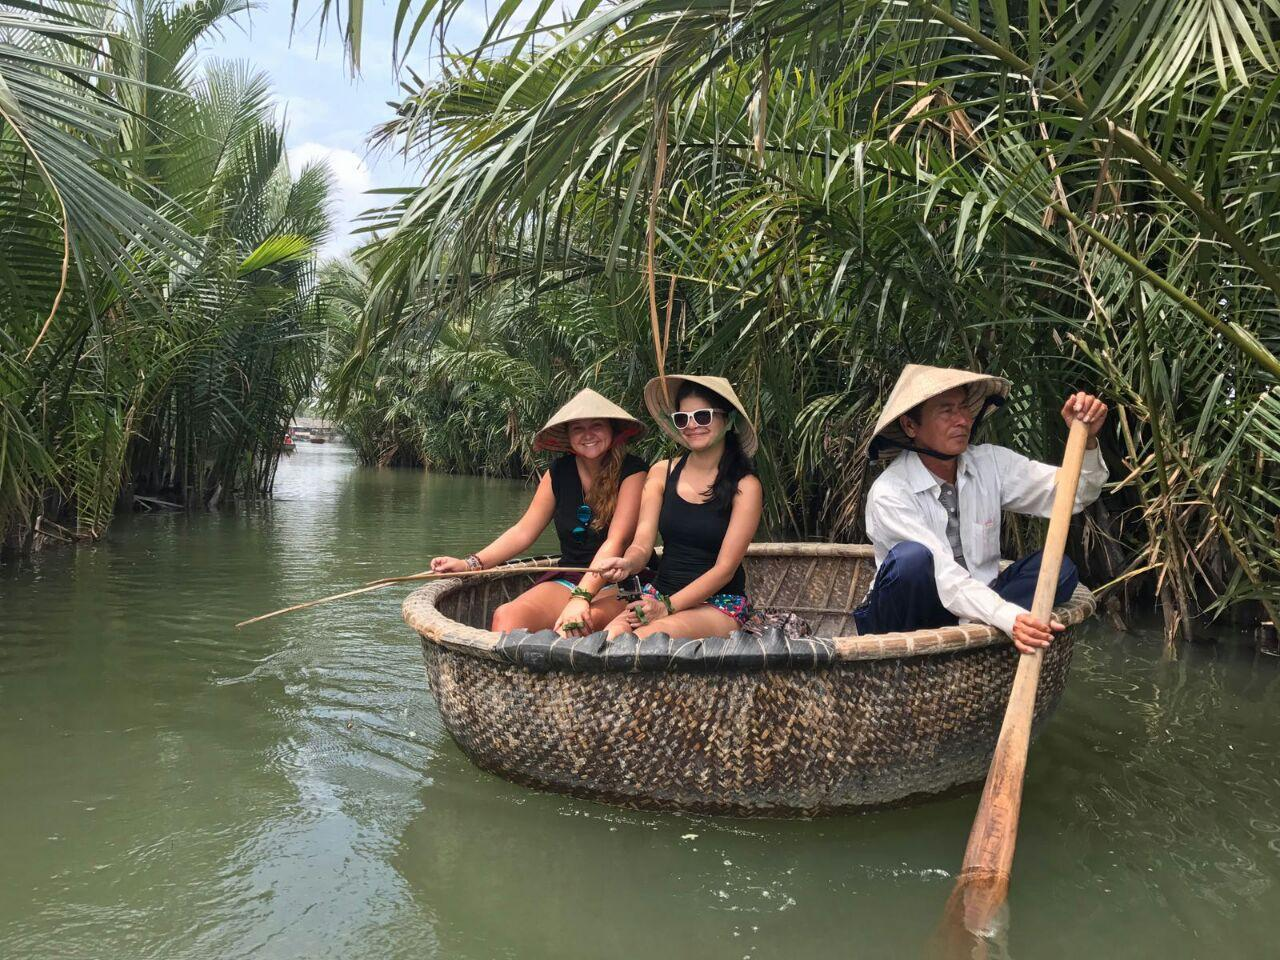 Crab Fishing on a Bamboo Boat - Immersing in Hoi An's Simple Life